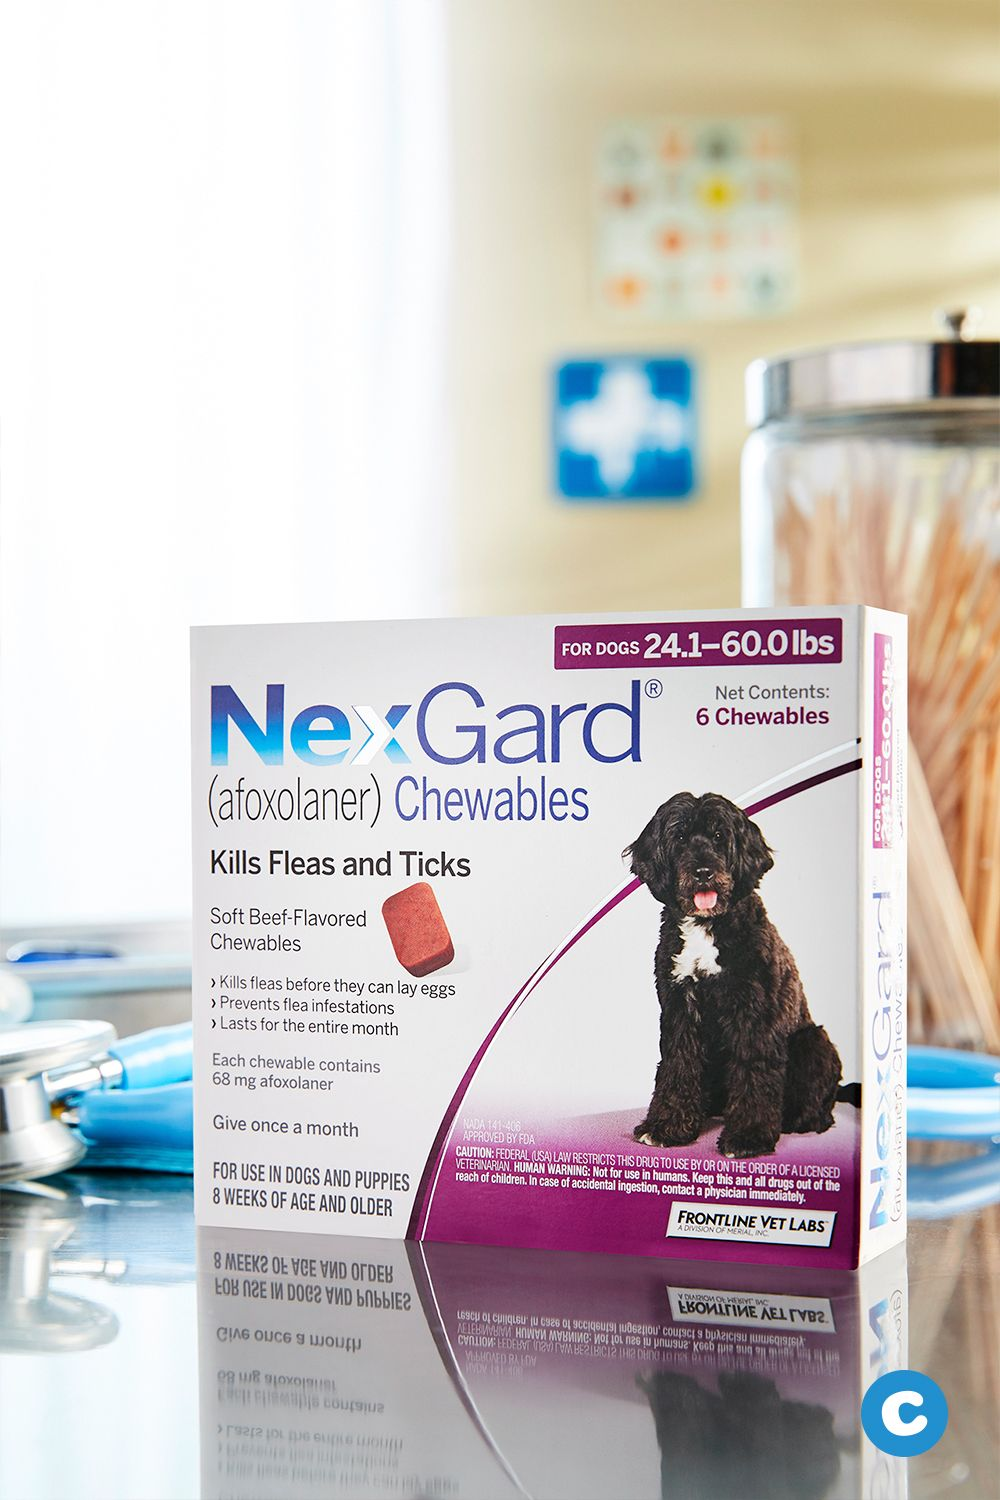 Nexgard Chewables For Dogs 24 1 60 Lbs 3 Treatments Purple Box Chewy Com Lyme Disease In Dogs Dog Help Brown Dog Tick